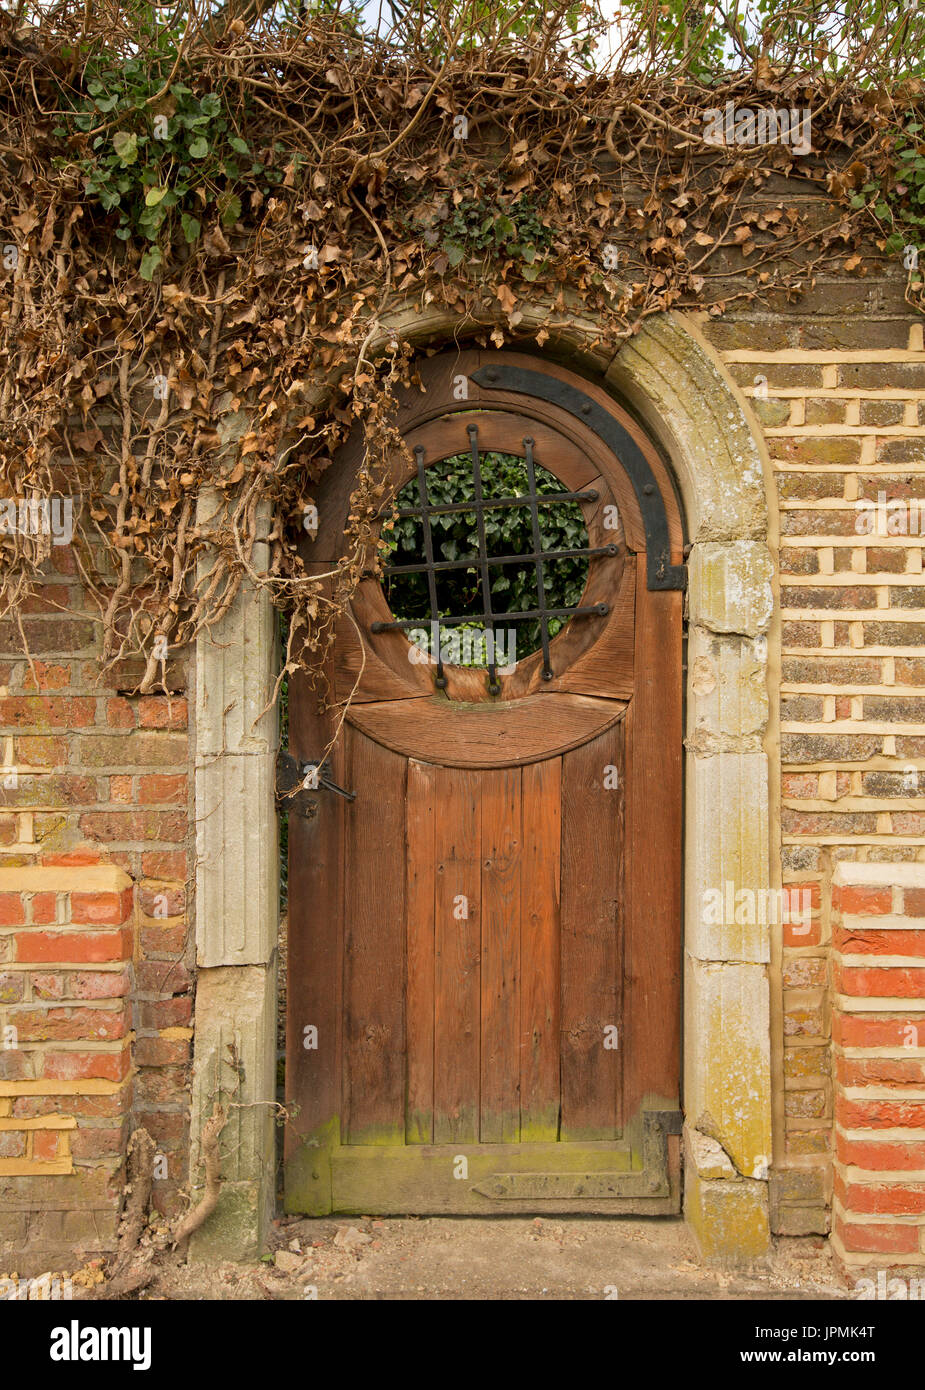 Unusual Arched Reddish Brown Wooden Door With Circular Grill U0026 Unique  Artistic Hinges In Red Brick Wall, Entrance To Garden In English Village